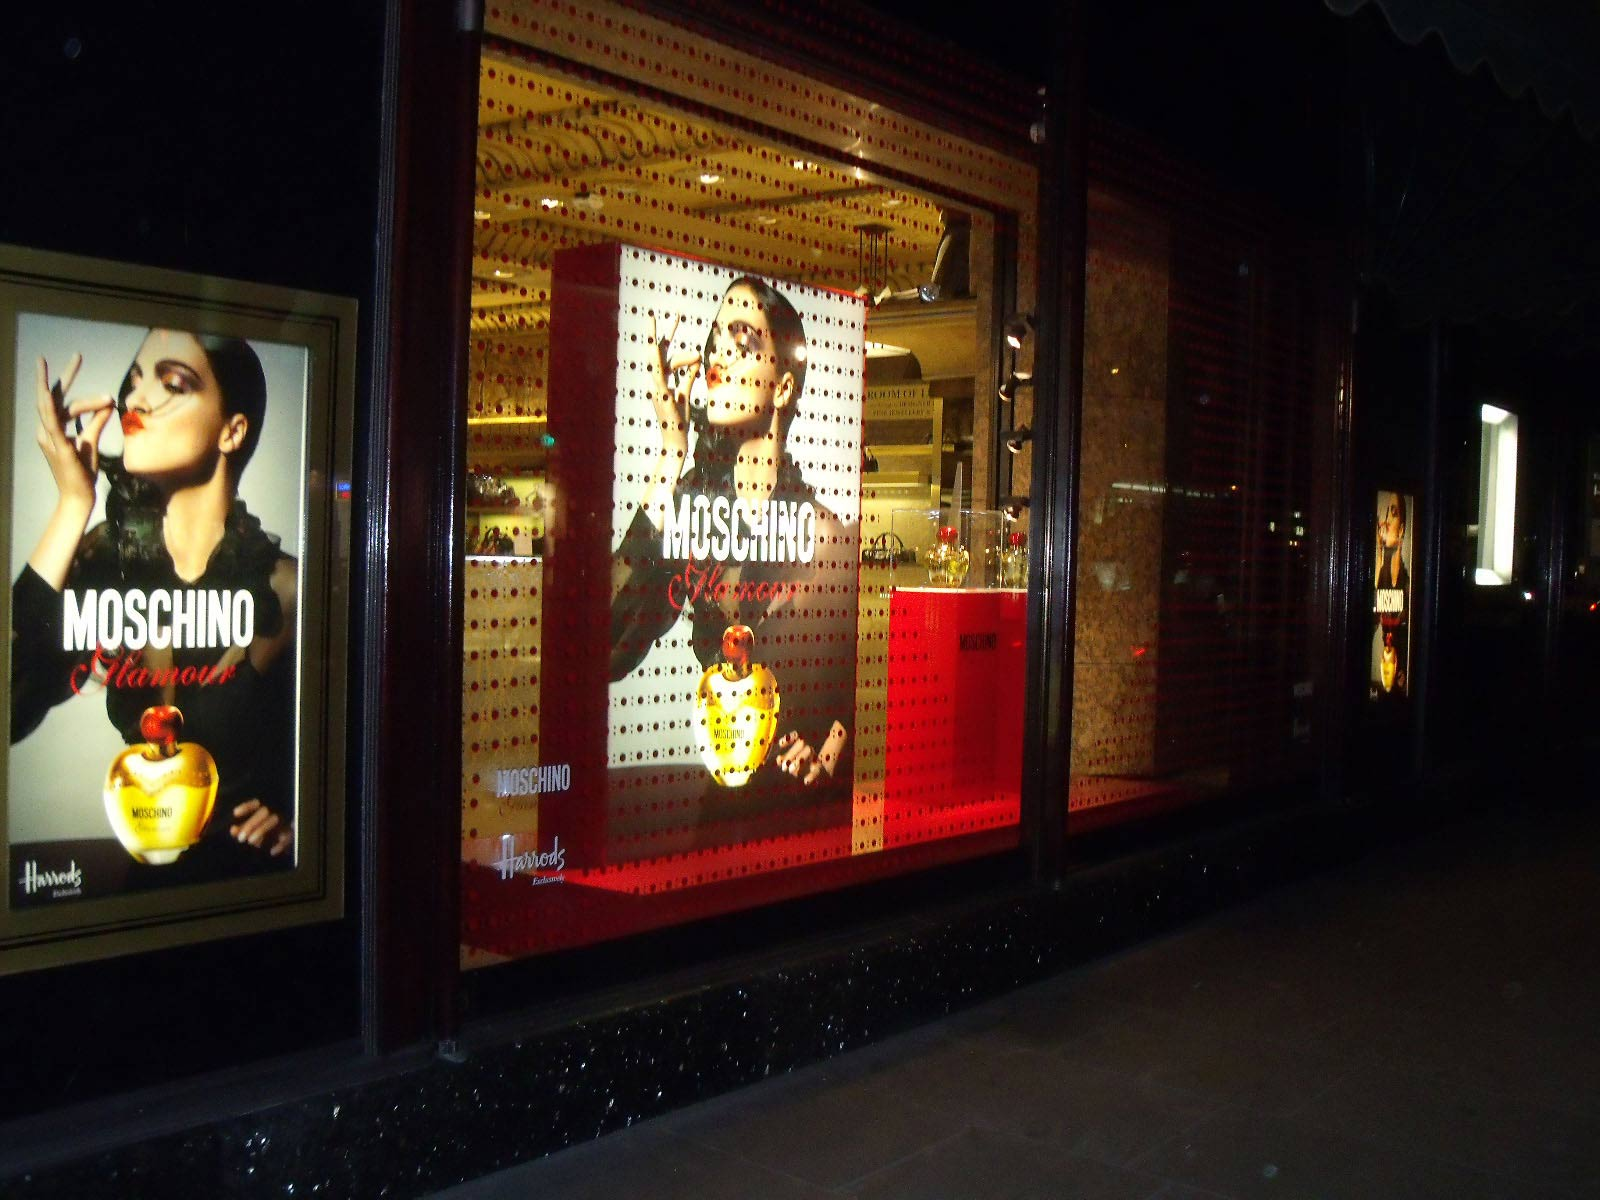 Moschino Glamour Harrods Window